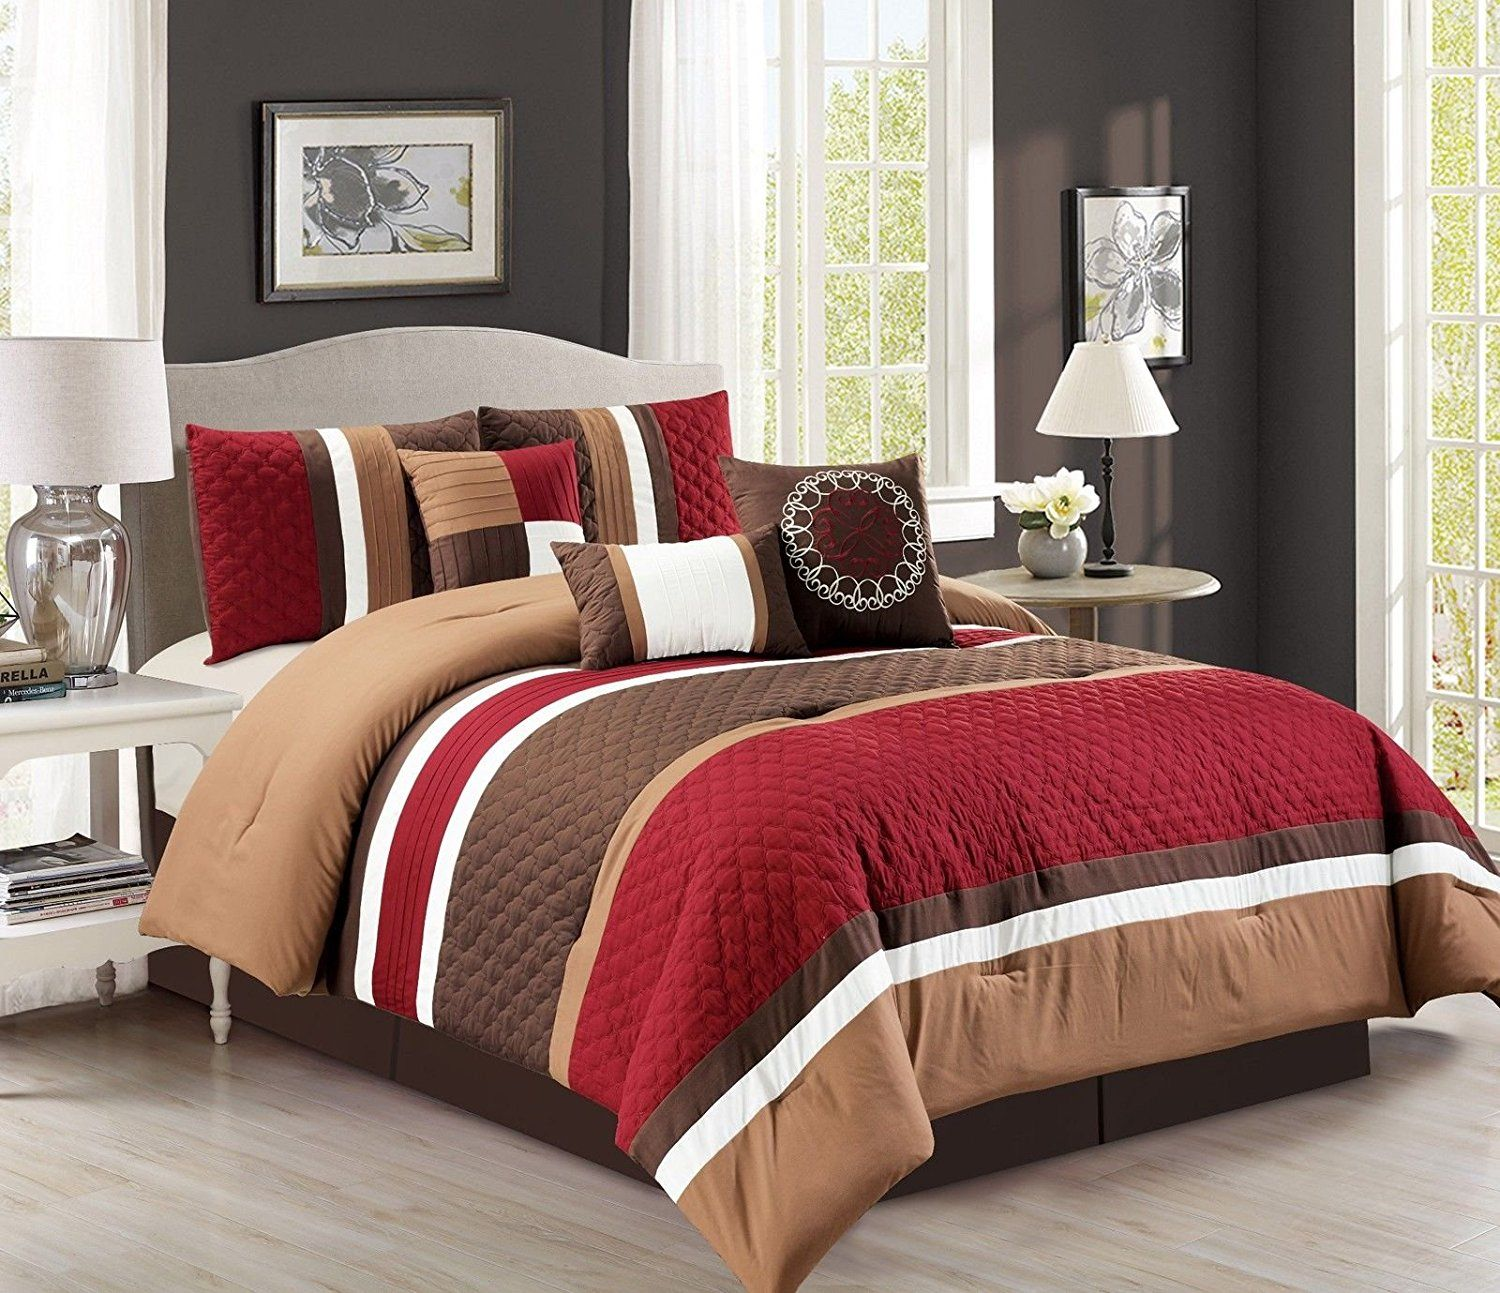 comforter ashley info flower yakunina and amberley chezmoi laura set black sets white quilt amazoncom king home